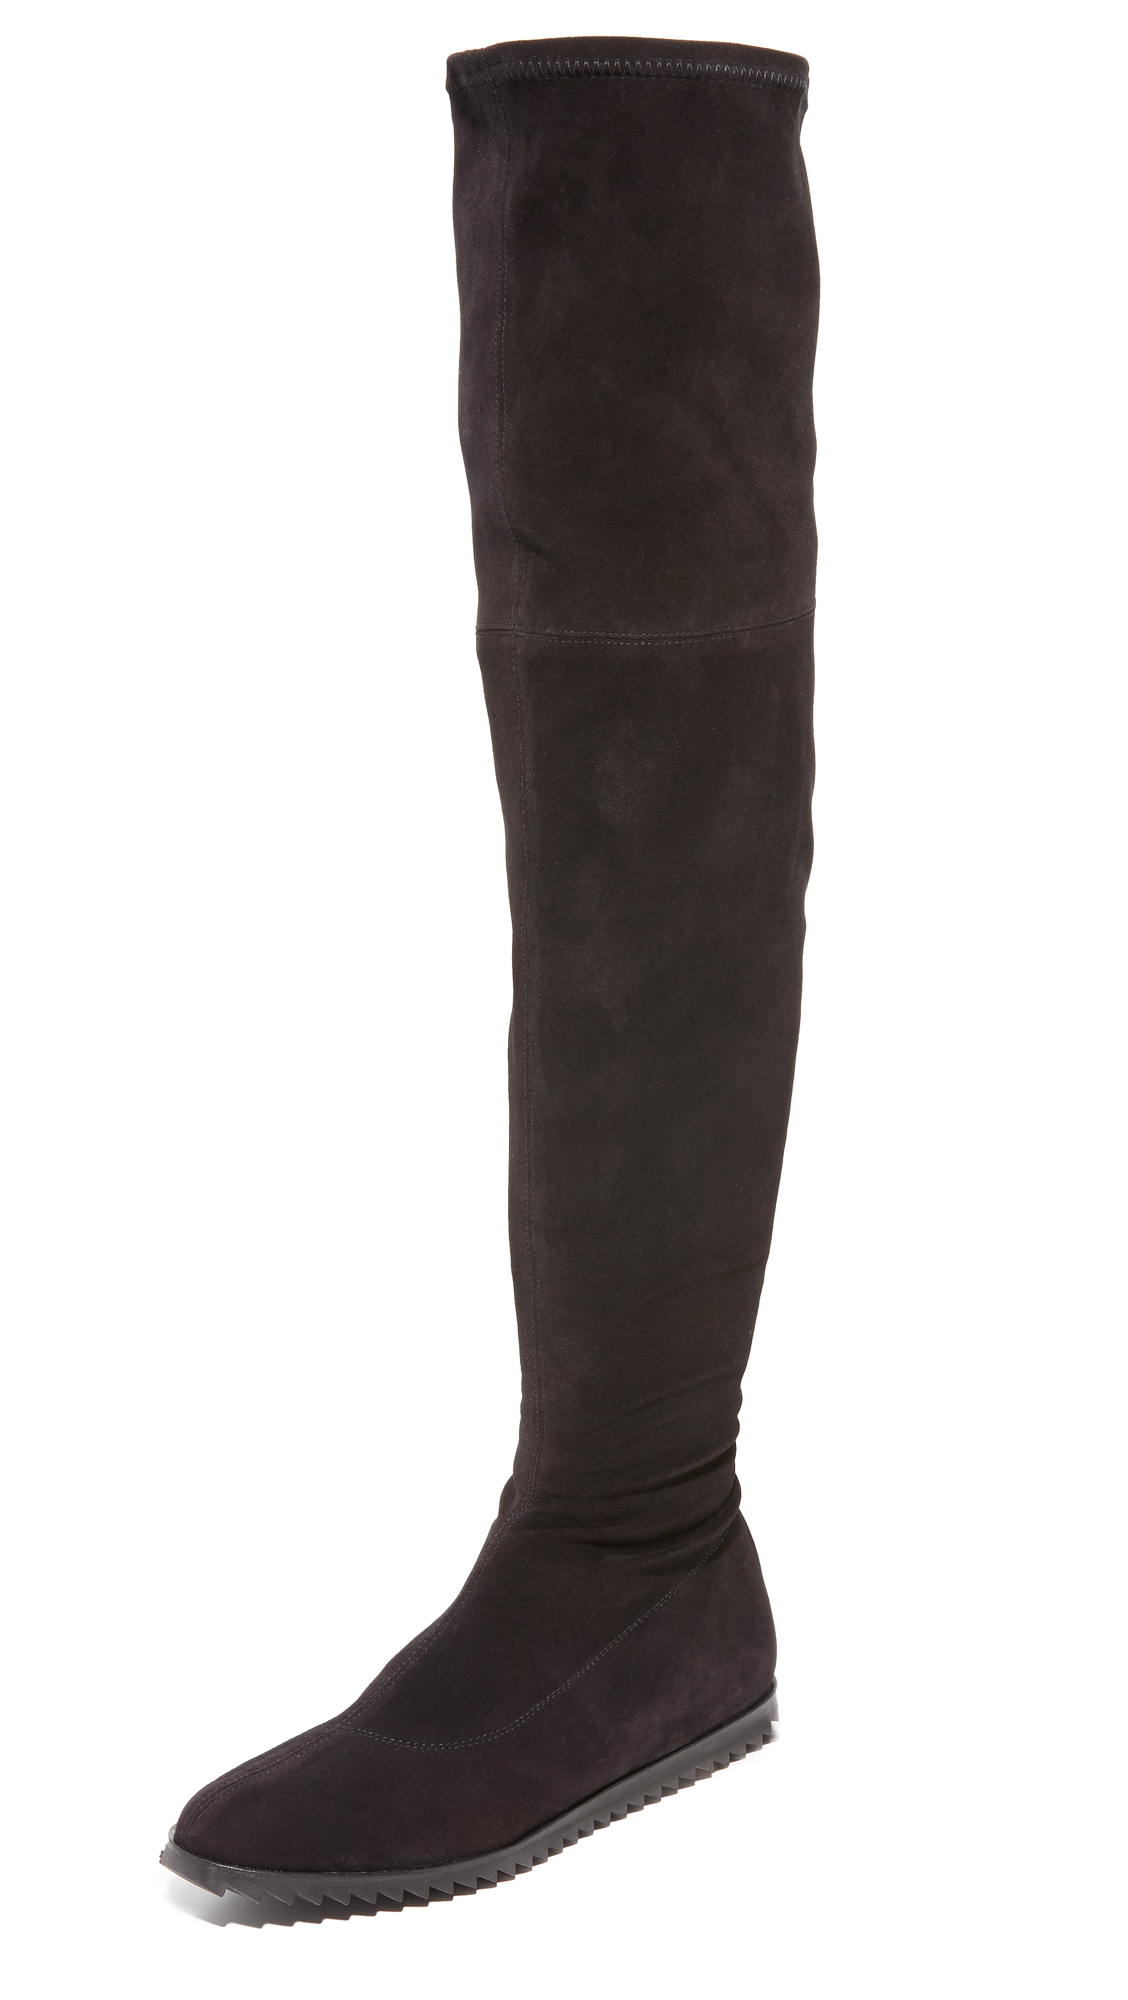 Pedro Garcia Yule Over The Knee Boots - Black